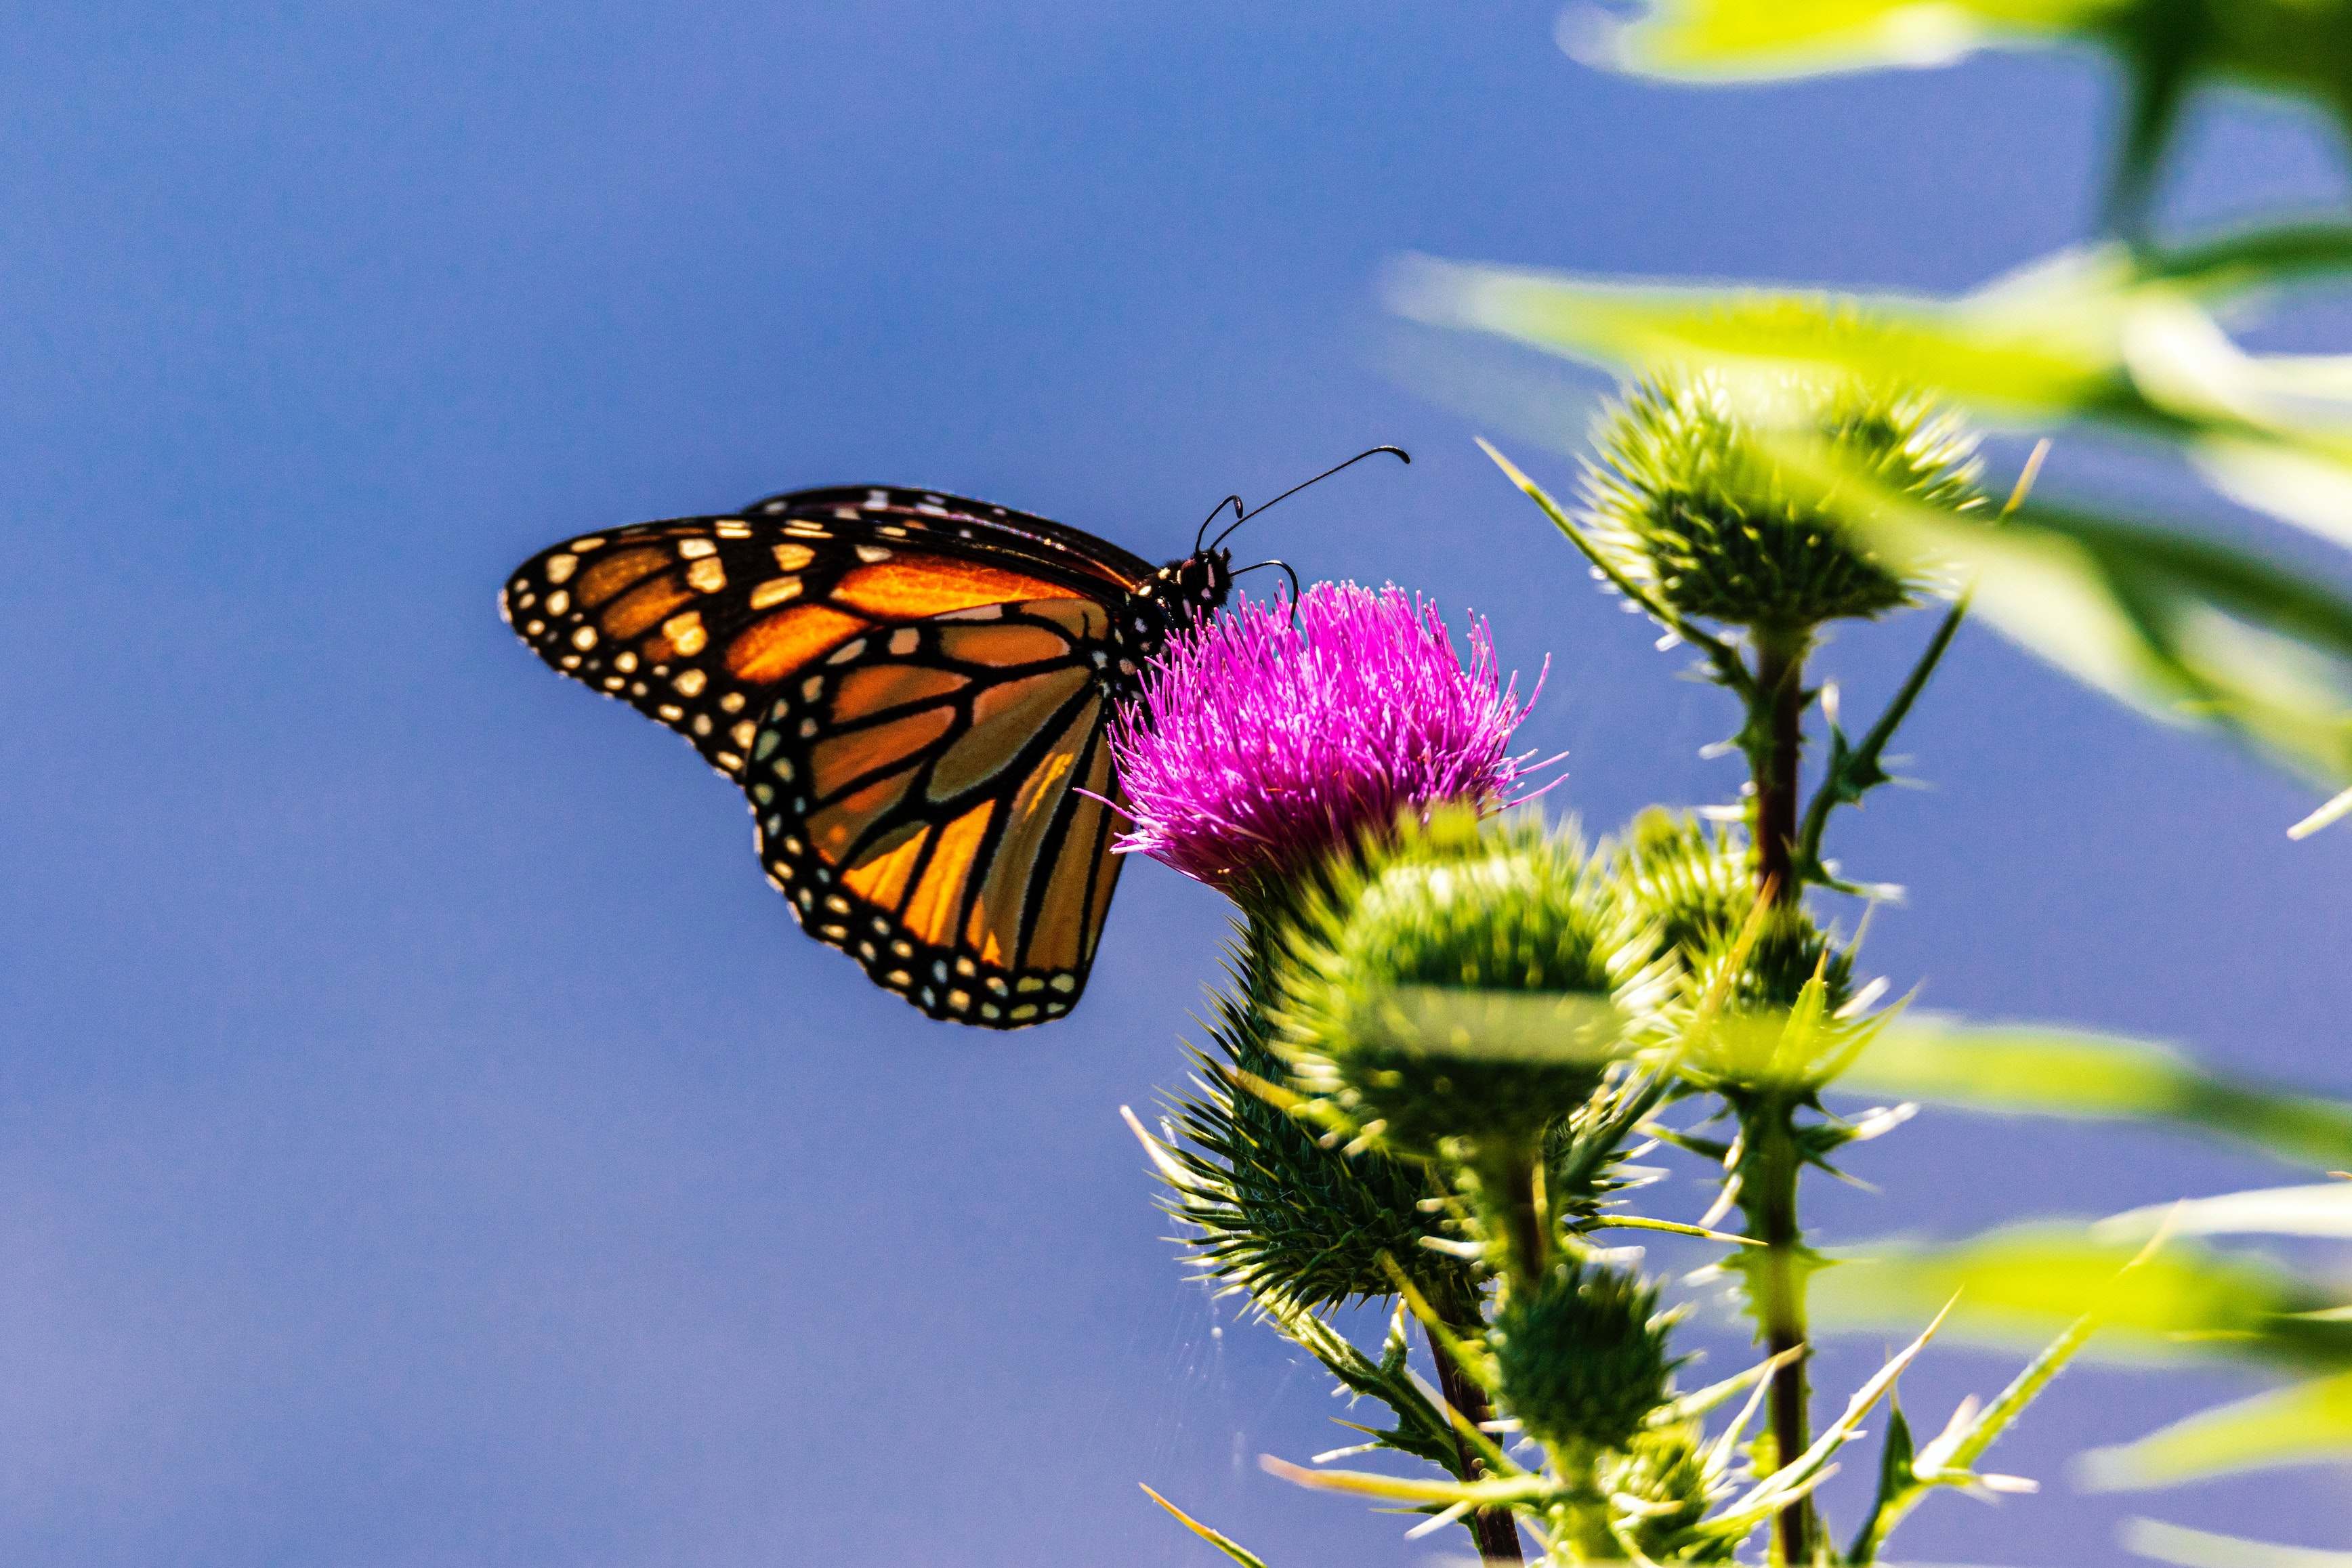 A monarch butterfly on a pink flower, against a blue sky. Photo courtesy of Camerauthor on Unsplash.